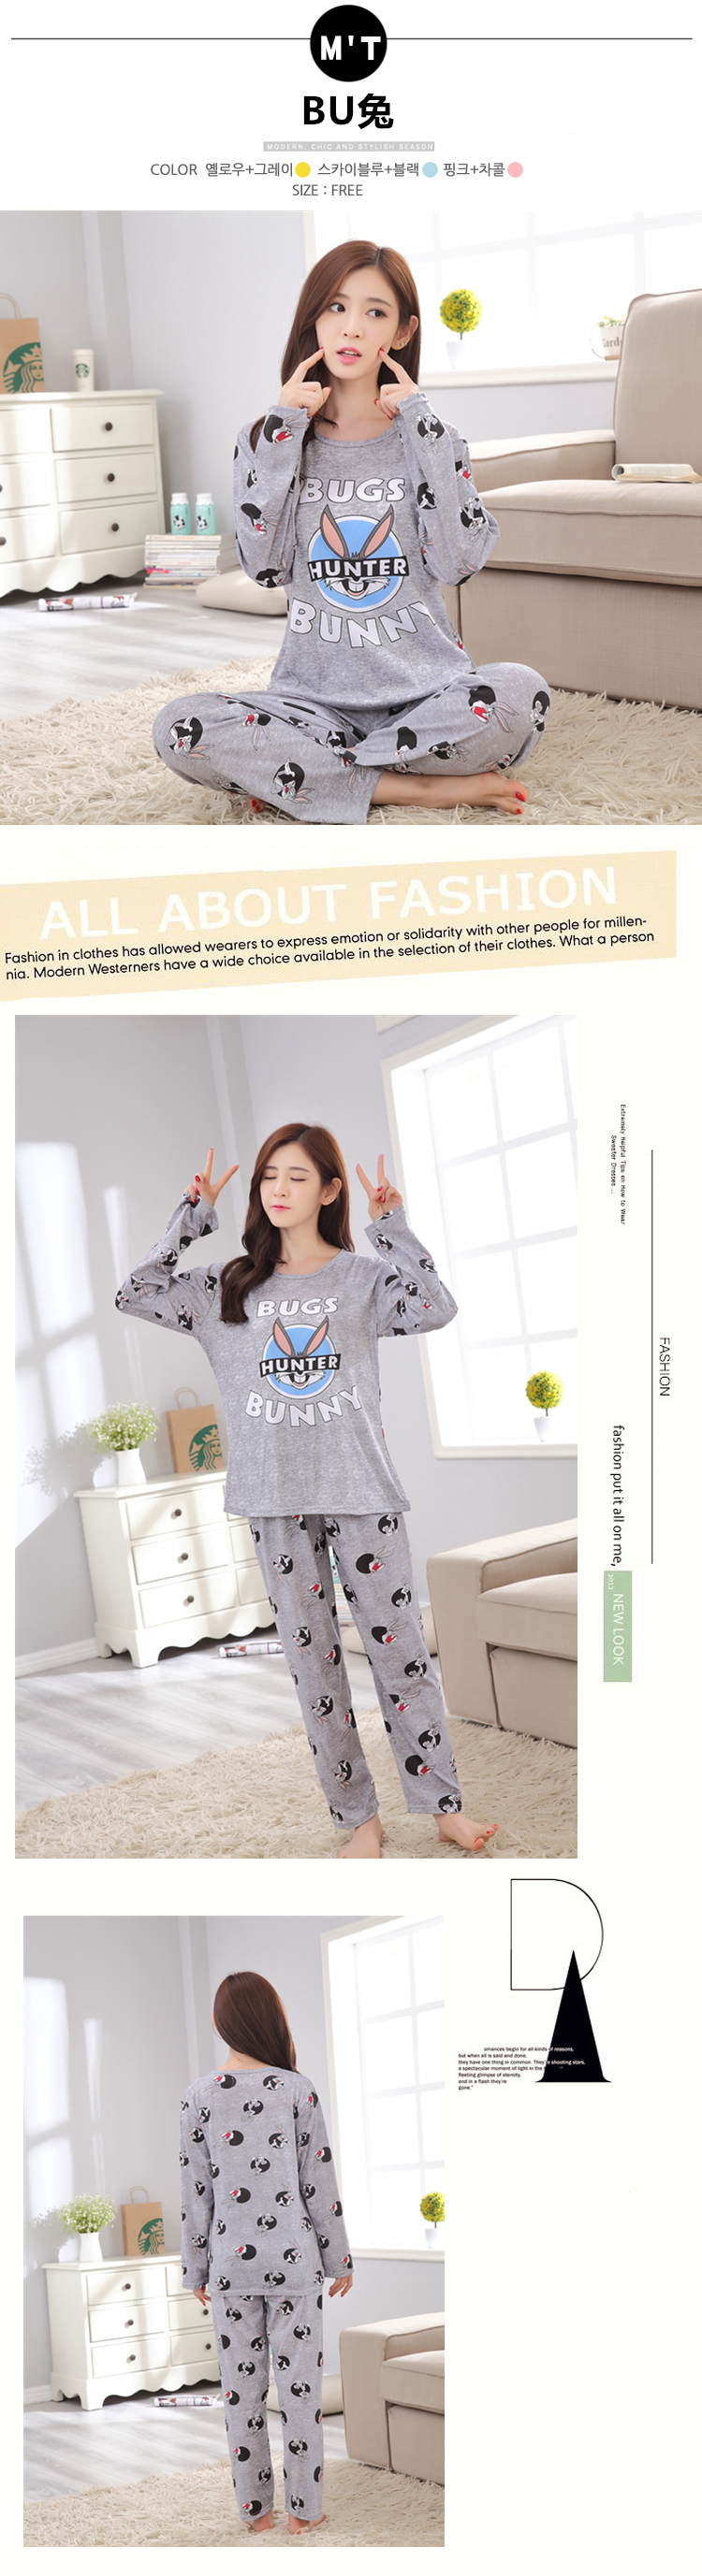 Spring Autumn 20 Style Thin Carton Generation Women pajamas Long Sleepwear Suit Home Women Female Sleep Top Wholesale Pajamas 21